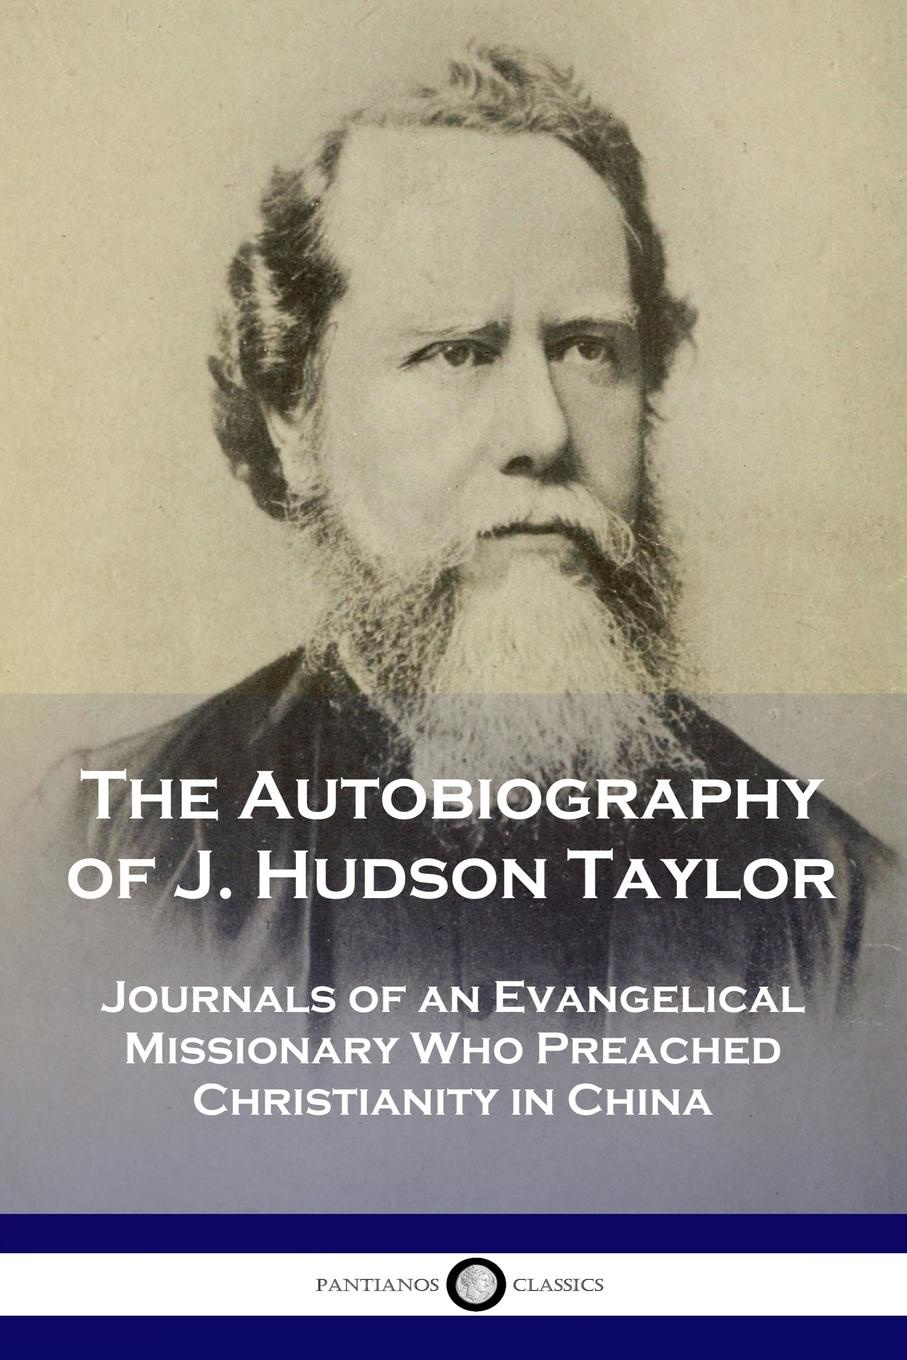 J. Hudson Taylor The Autobiography of J. Hudson Taylor. Journals of an Evangelical Missionary Who Preached Christianity in China юбка mondigo темно зеленый 46 размер